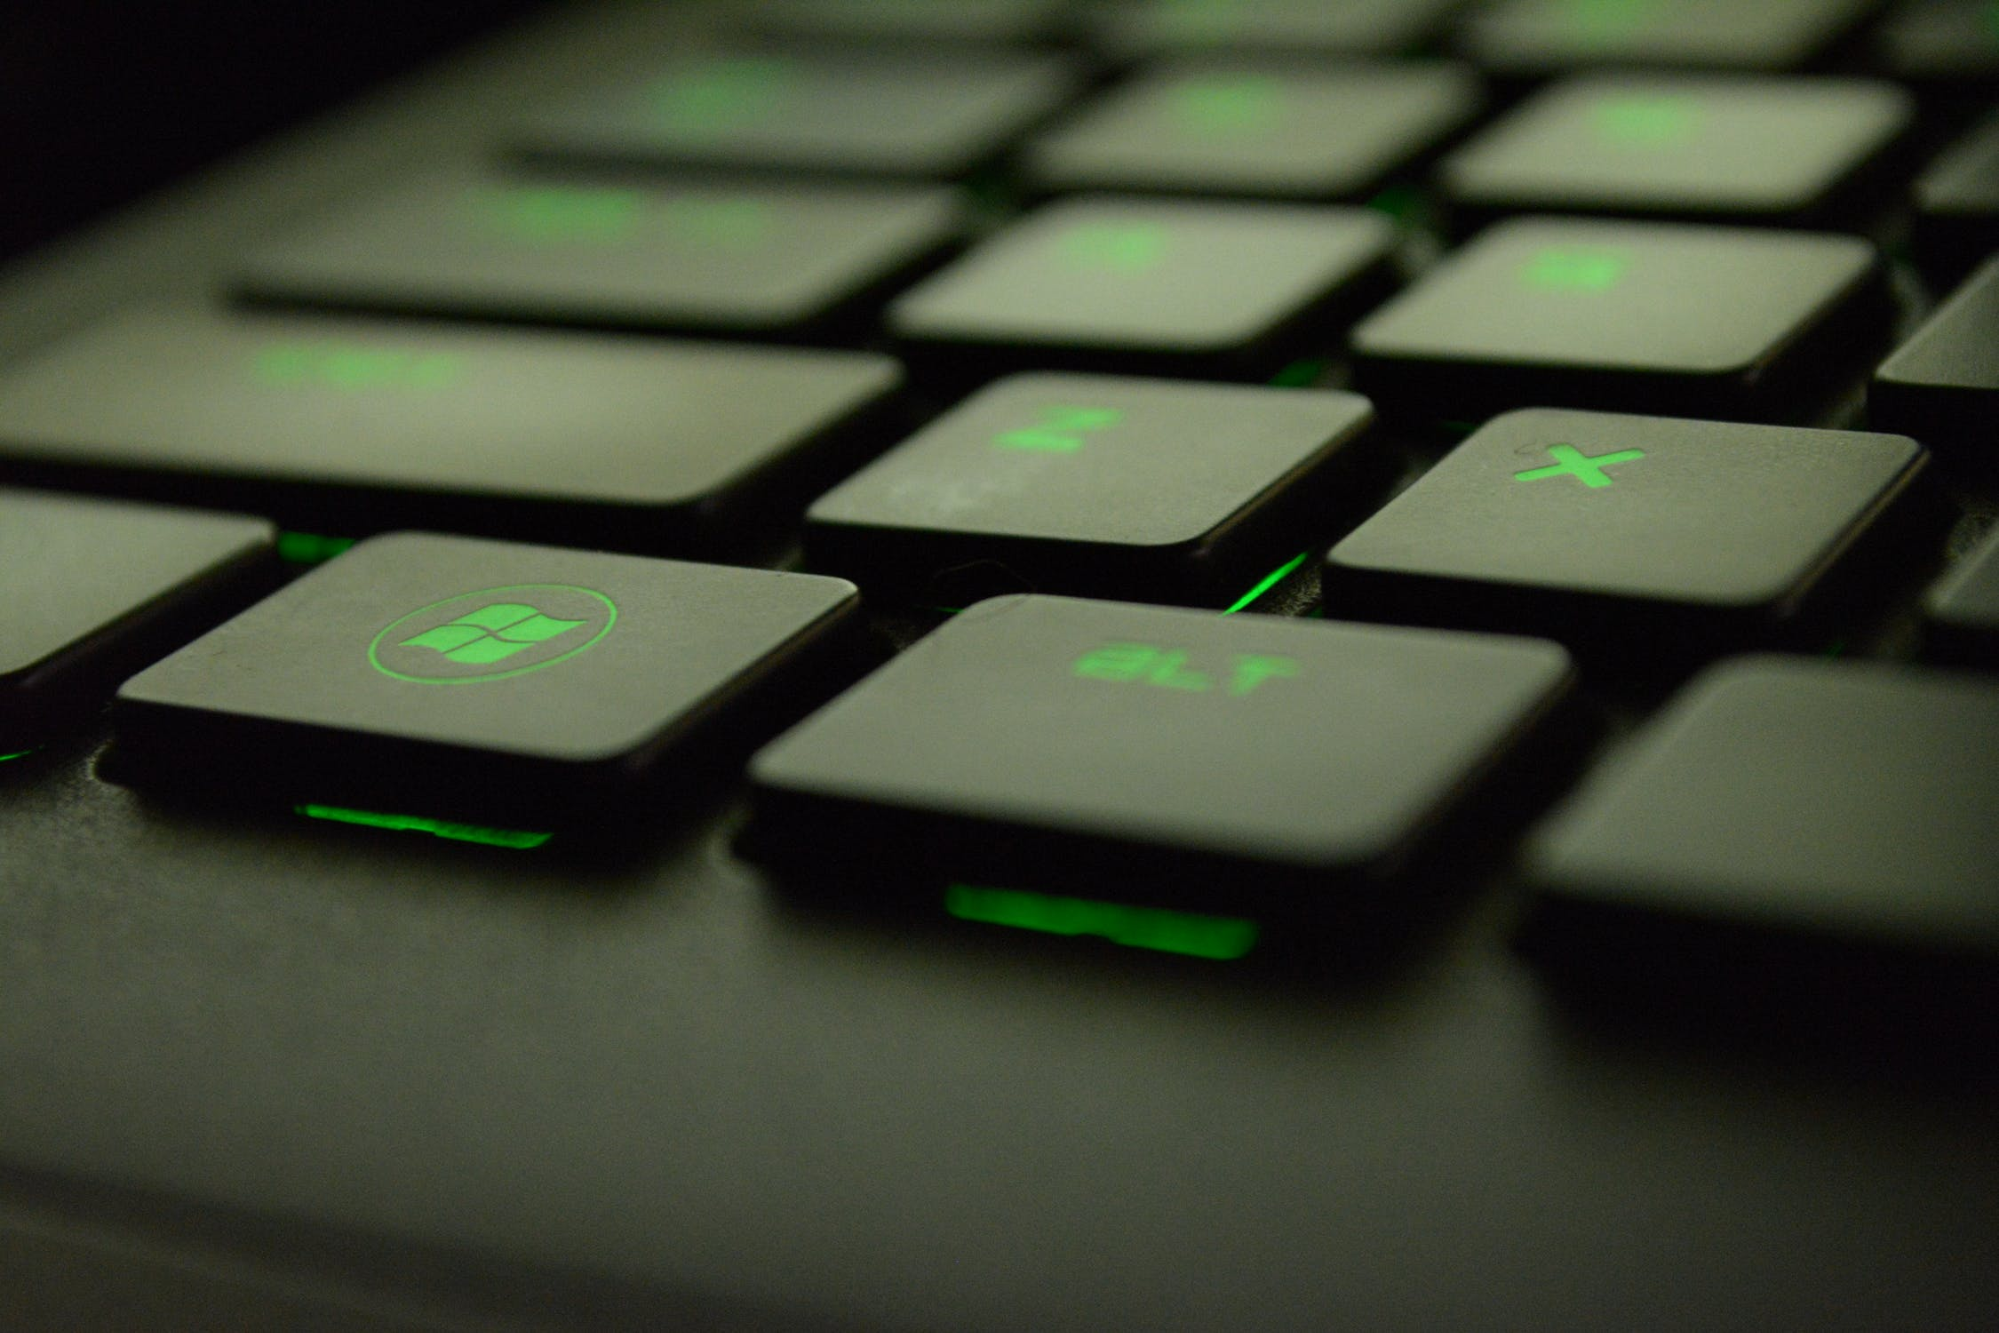 keyboard with green light